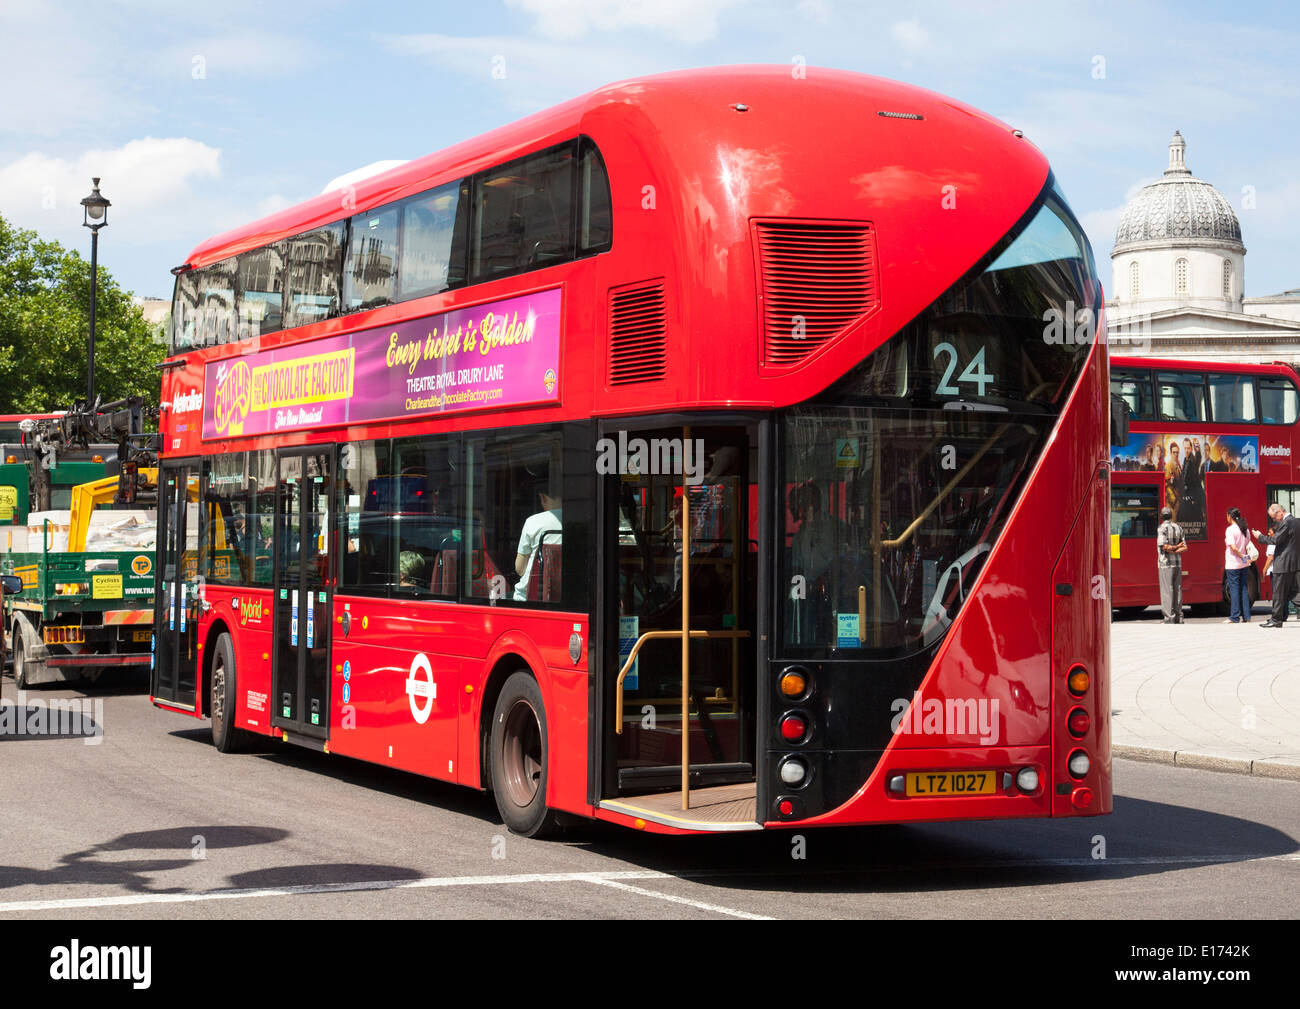 A new London Routemaster bus in Trafalgar Square, London, England, U.K. - Stock Image